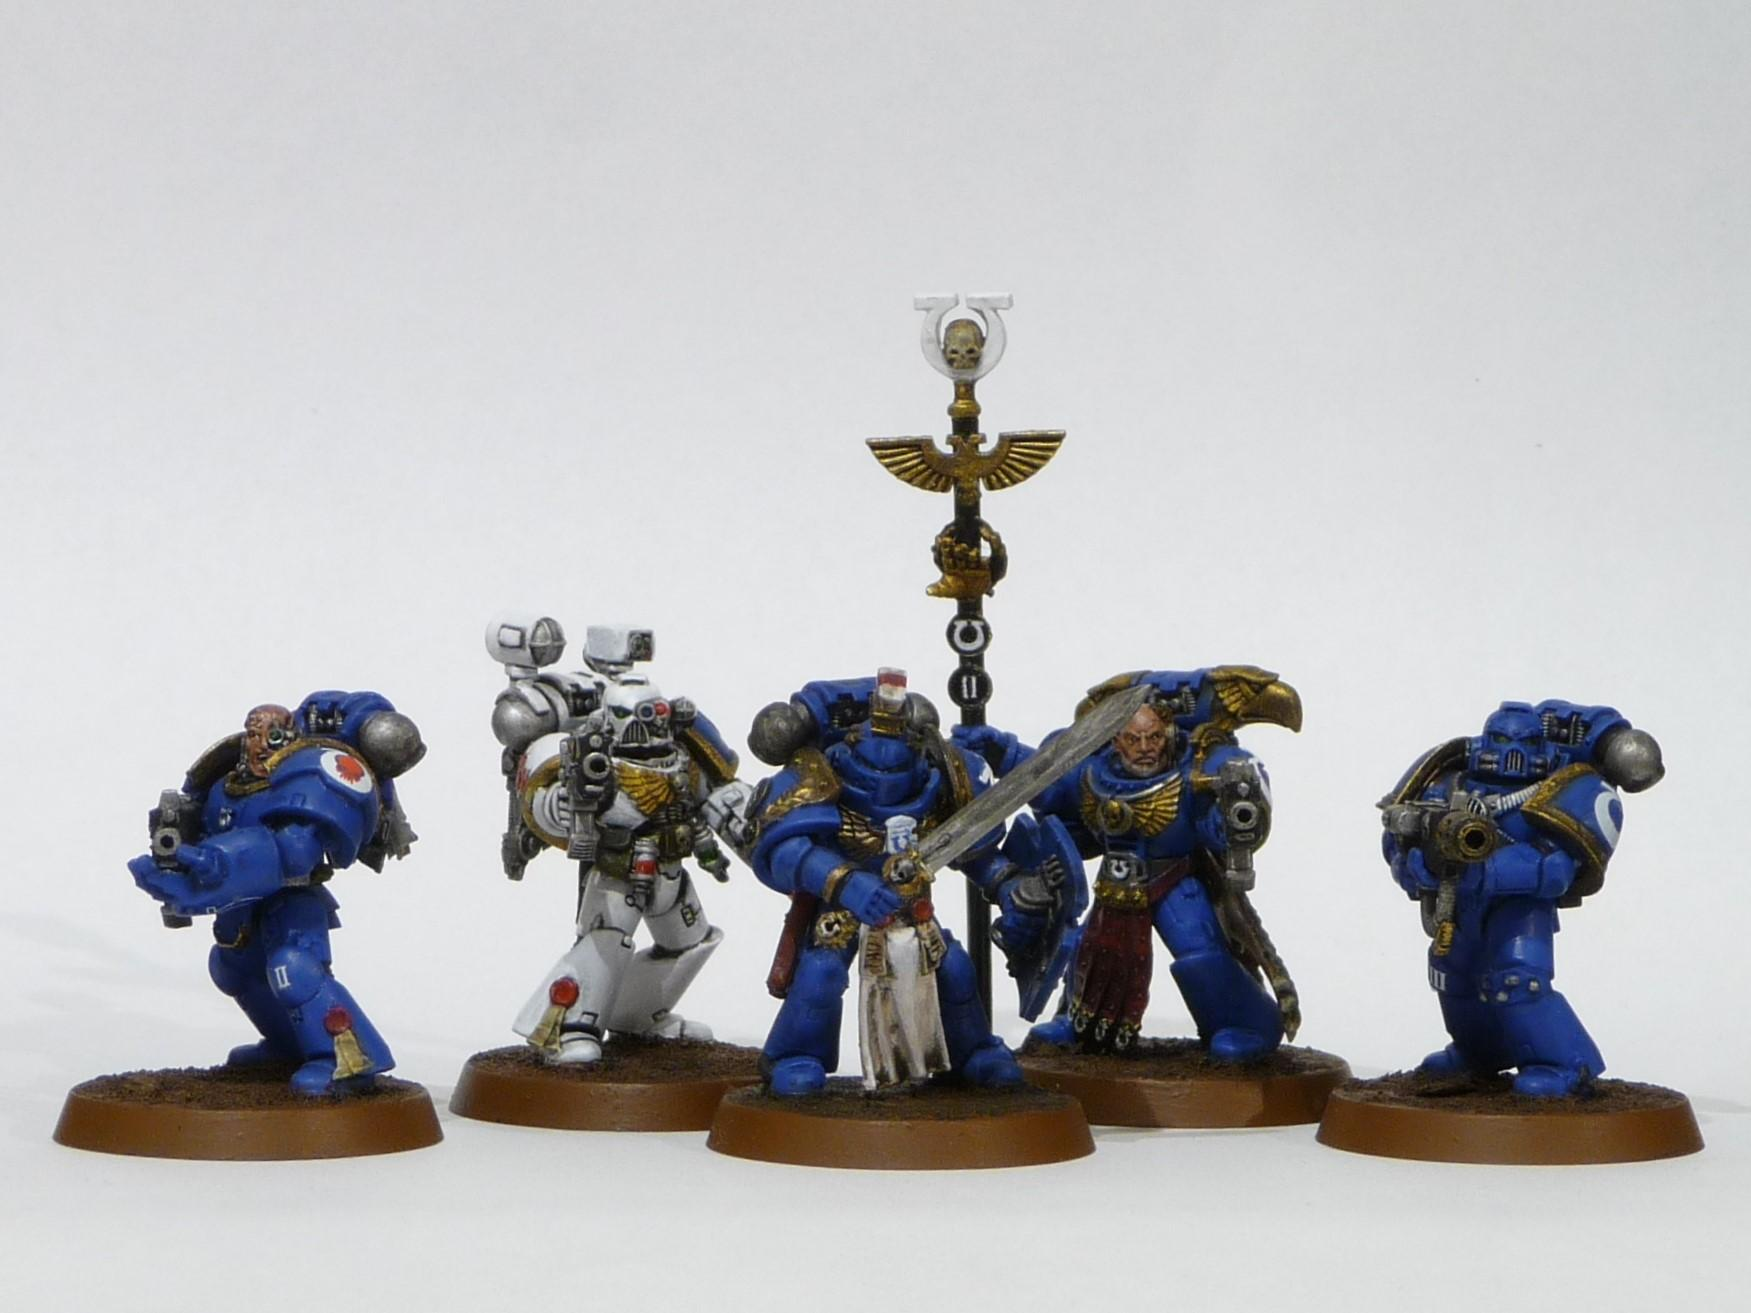 Ancient, Apothecary, Command Squad, Company Champion, Meltagun, Space Marines, Ultramarines, Veteran Sergeant